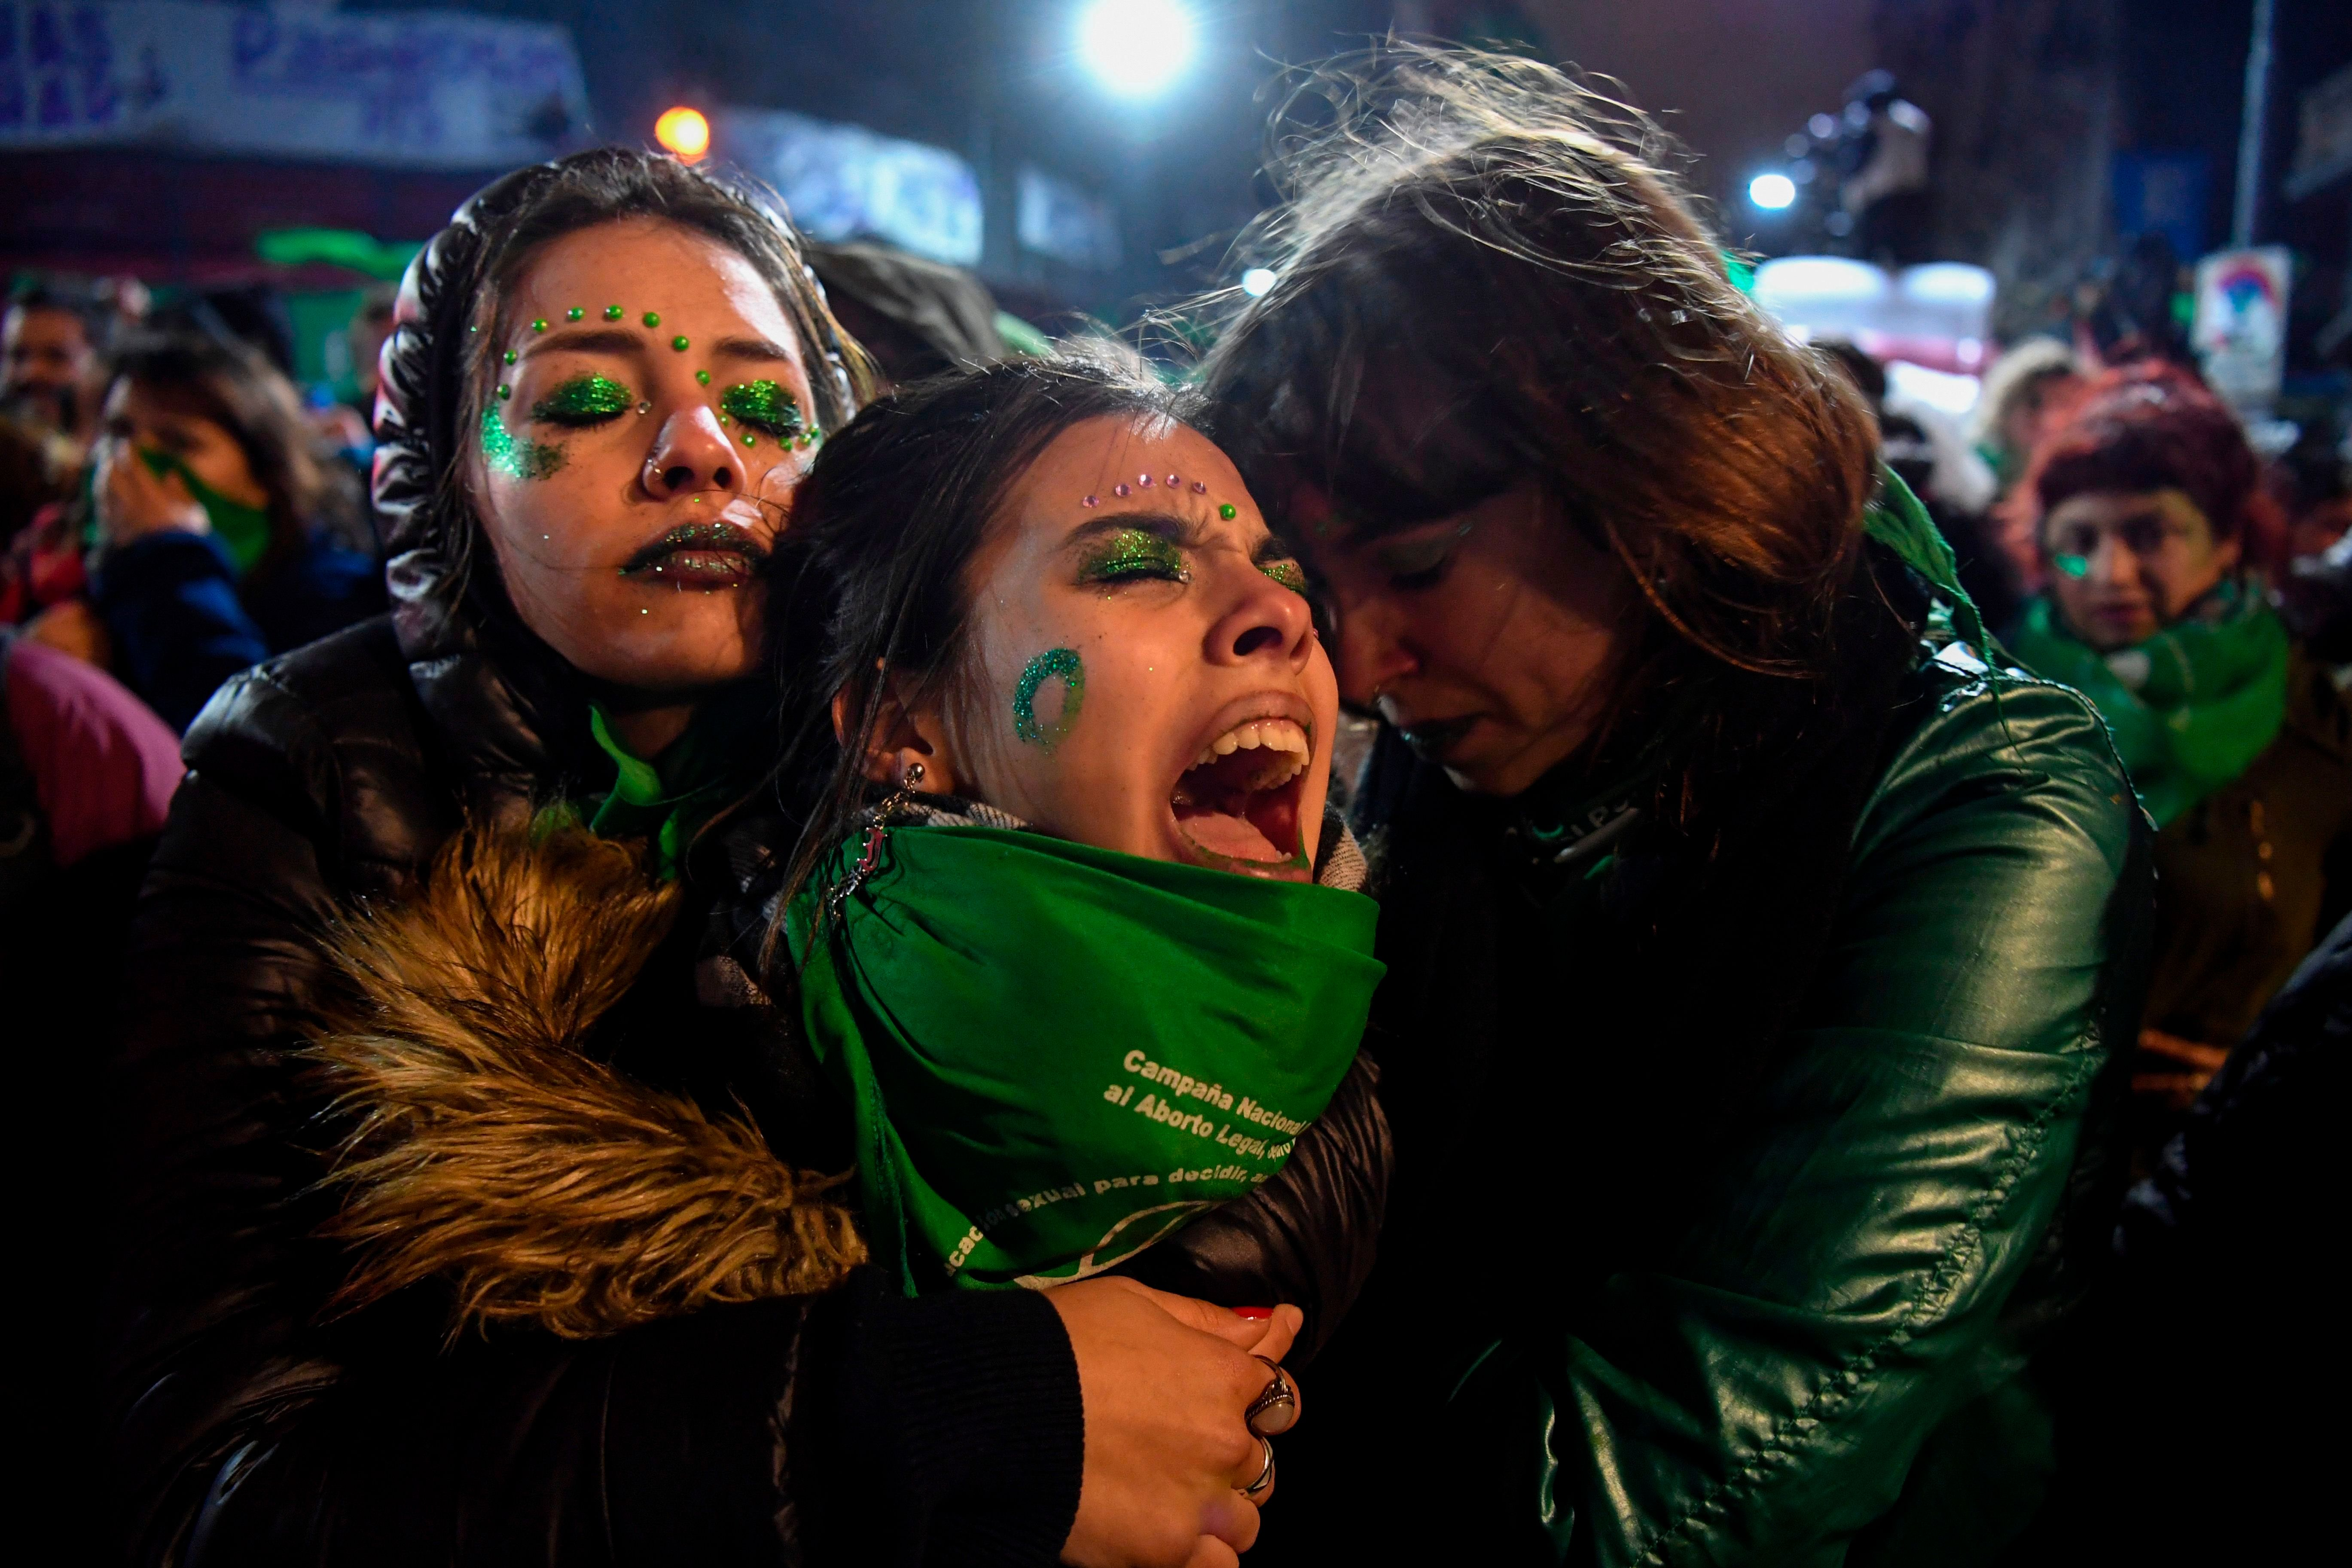 Activists in favour of the legalization of abortion comfort each other outside the National Congress in Buenos Aires, on August 9, 2018 after senators rejected the bill to legalize the abortion. - Argentine senators on Thursday voted against legalizing abortion in the homeland of Pope Francis, dashing the hopes of women's rights groups after the bill was approved by Congress's lower house in June. According to an official tally, 38 senators voted against, 31 in favor, while two abstained. (Photo by EITAN ABRAMOVICH / AFP)        (Photo credit should read EITAN ABRAMOVICH/AFP/Getty Images)